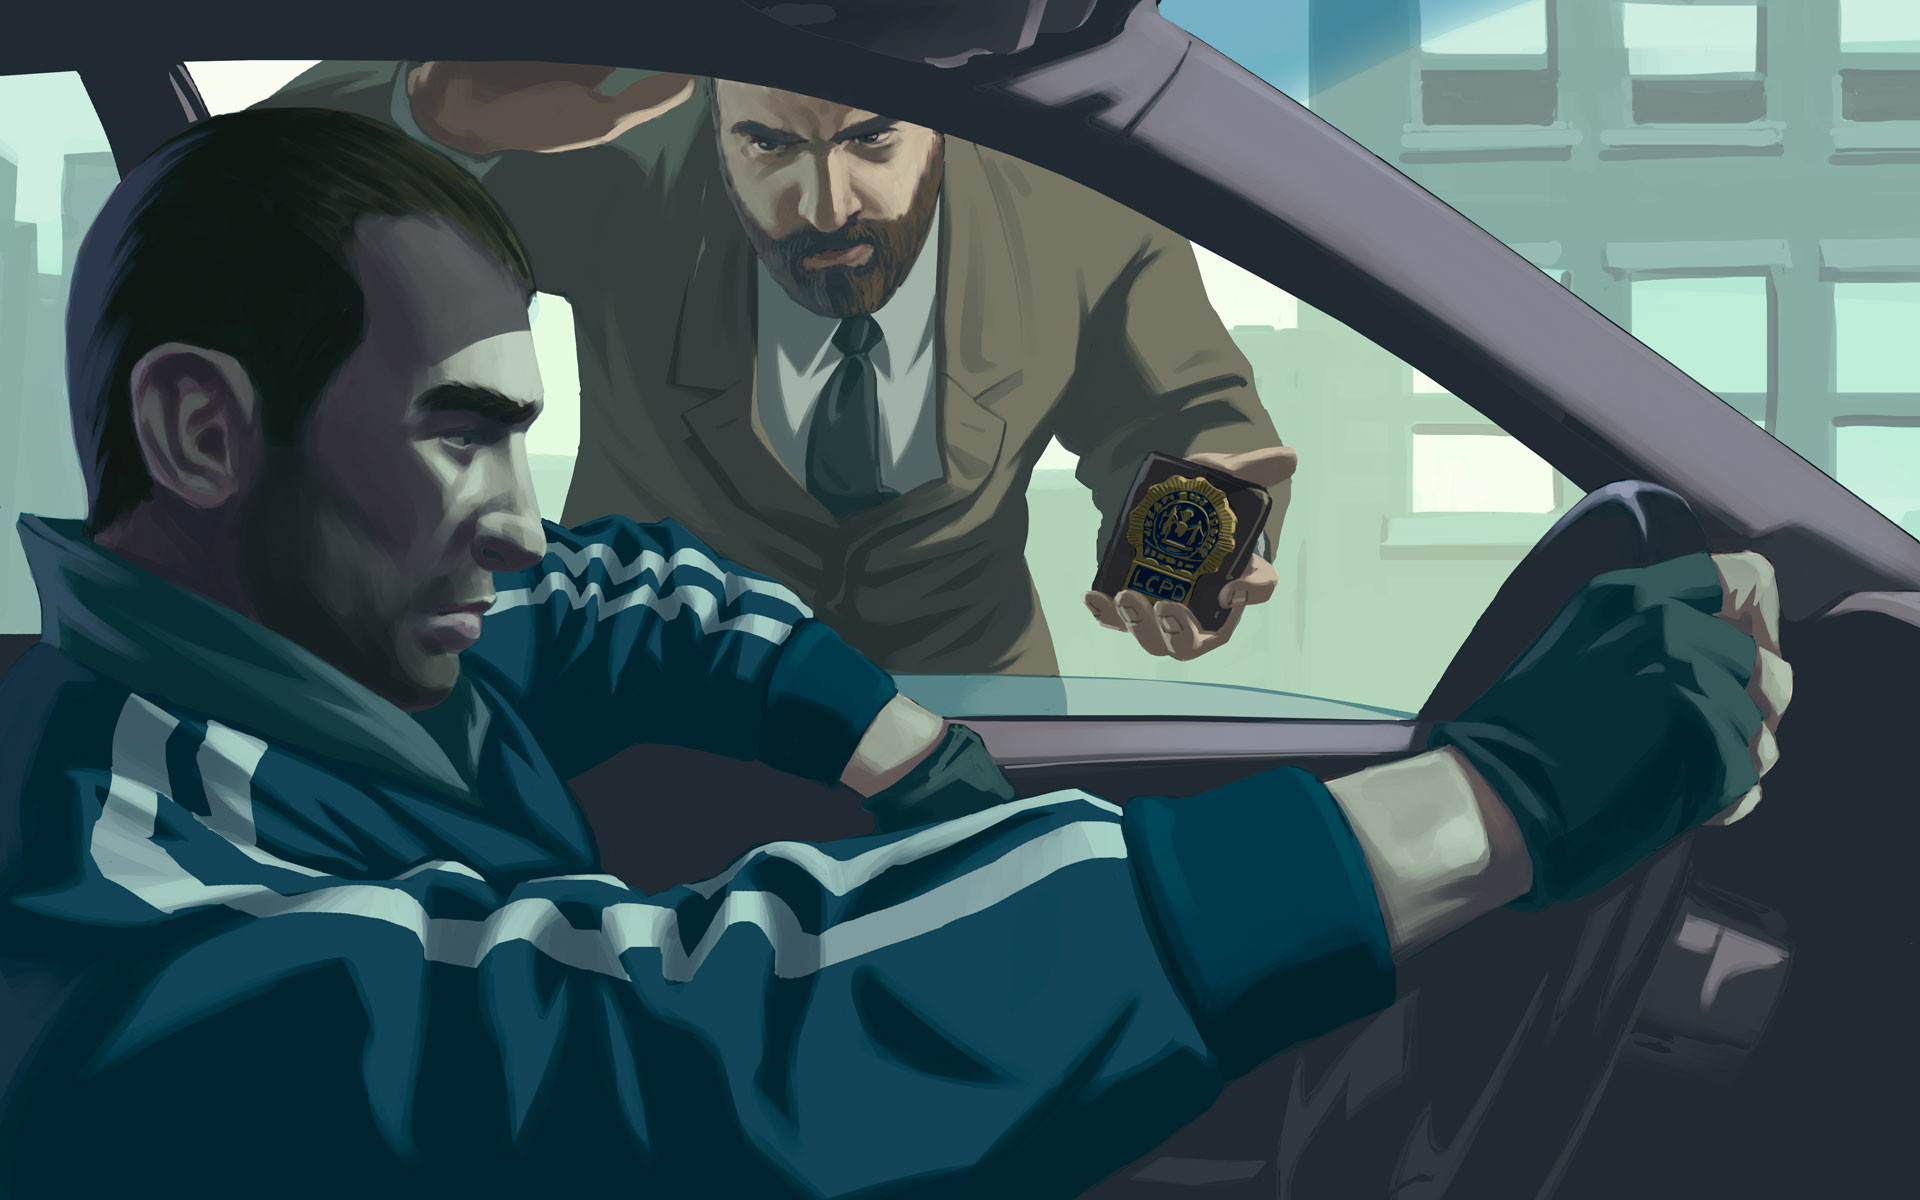 Res: 1920x1200, GRAND THEFT AUTO IV Desktop Wallpapers